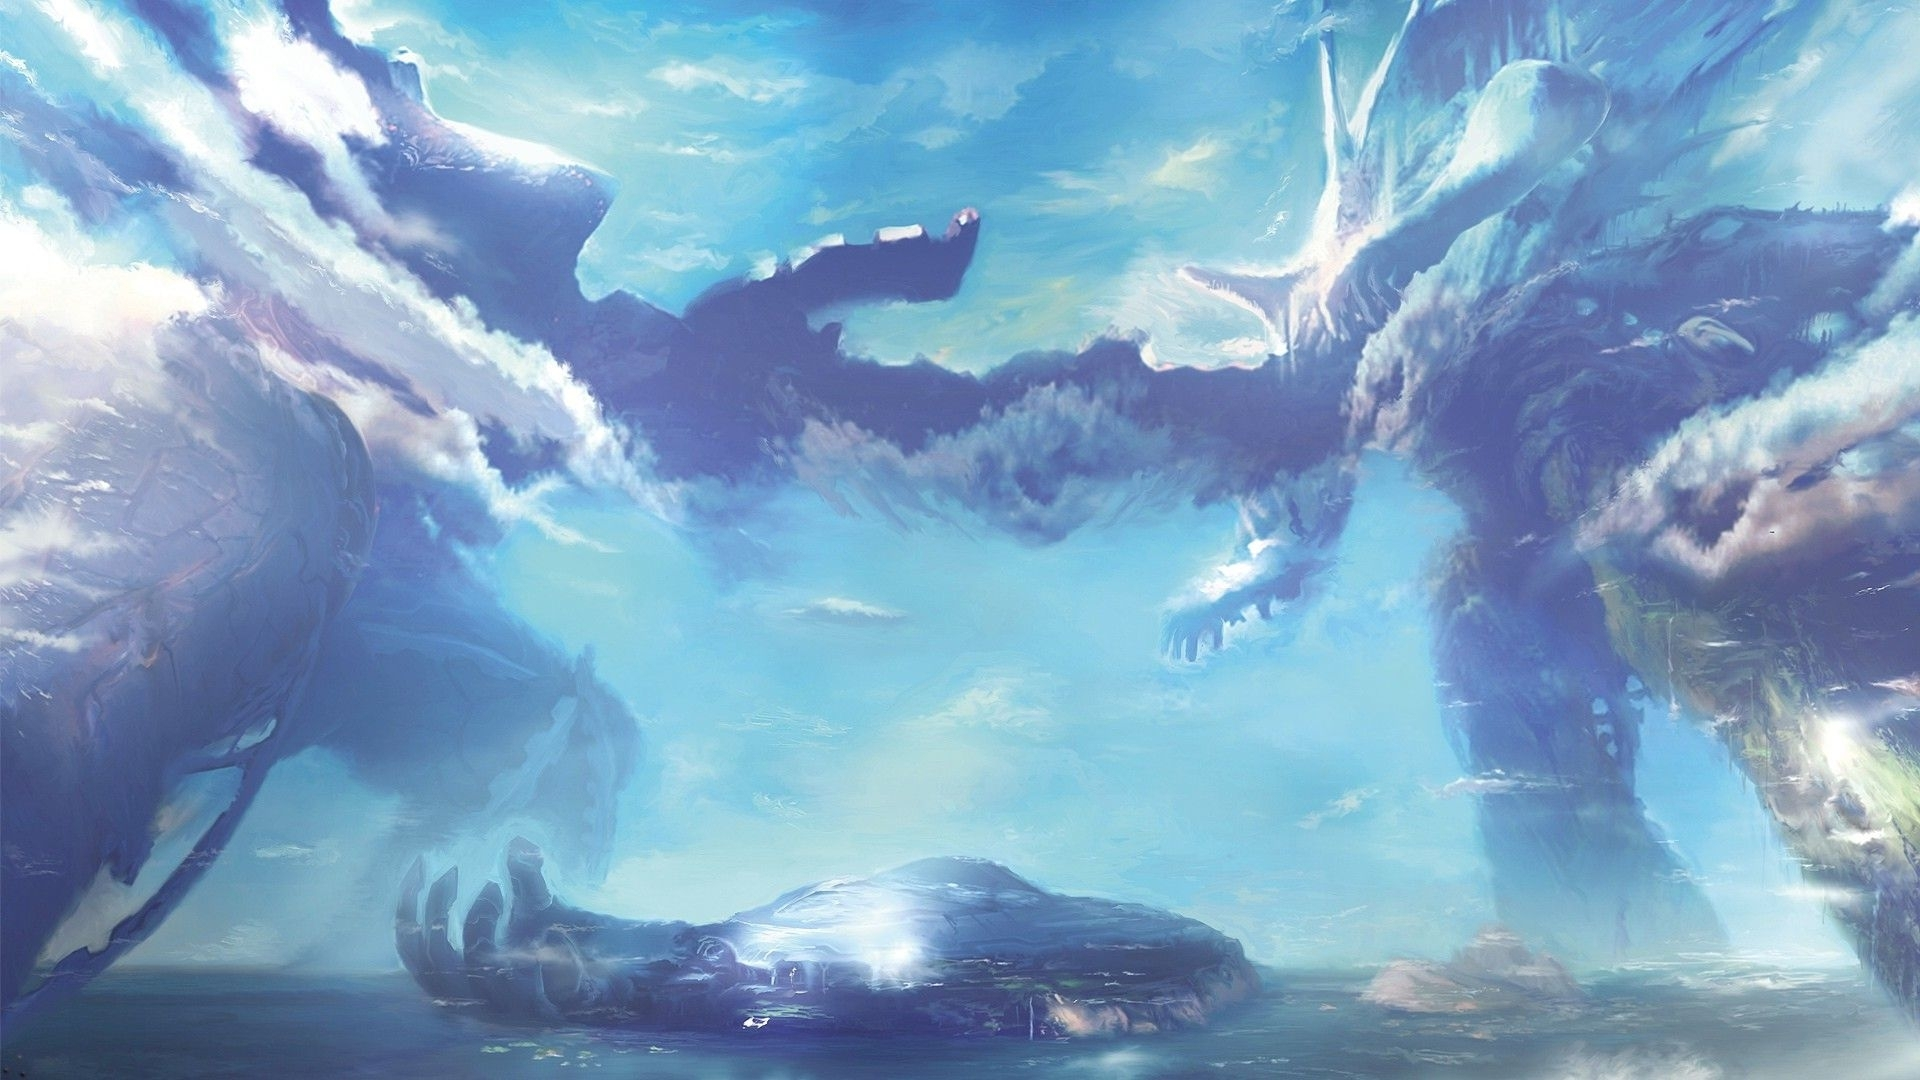 xenoblade chronicles hd wallpapers backgrounds wallpaper | 3d